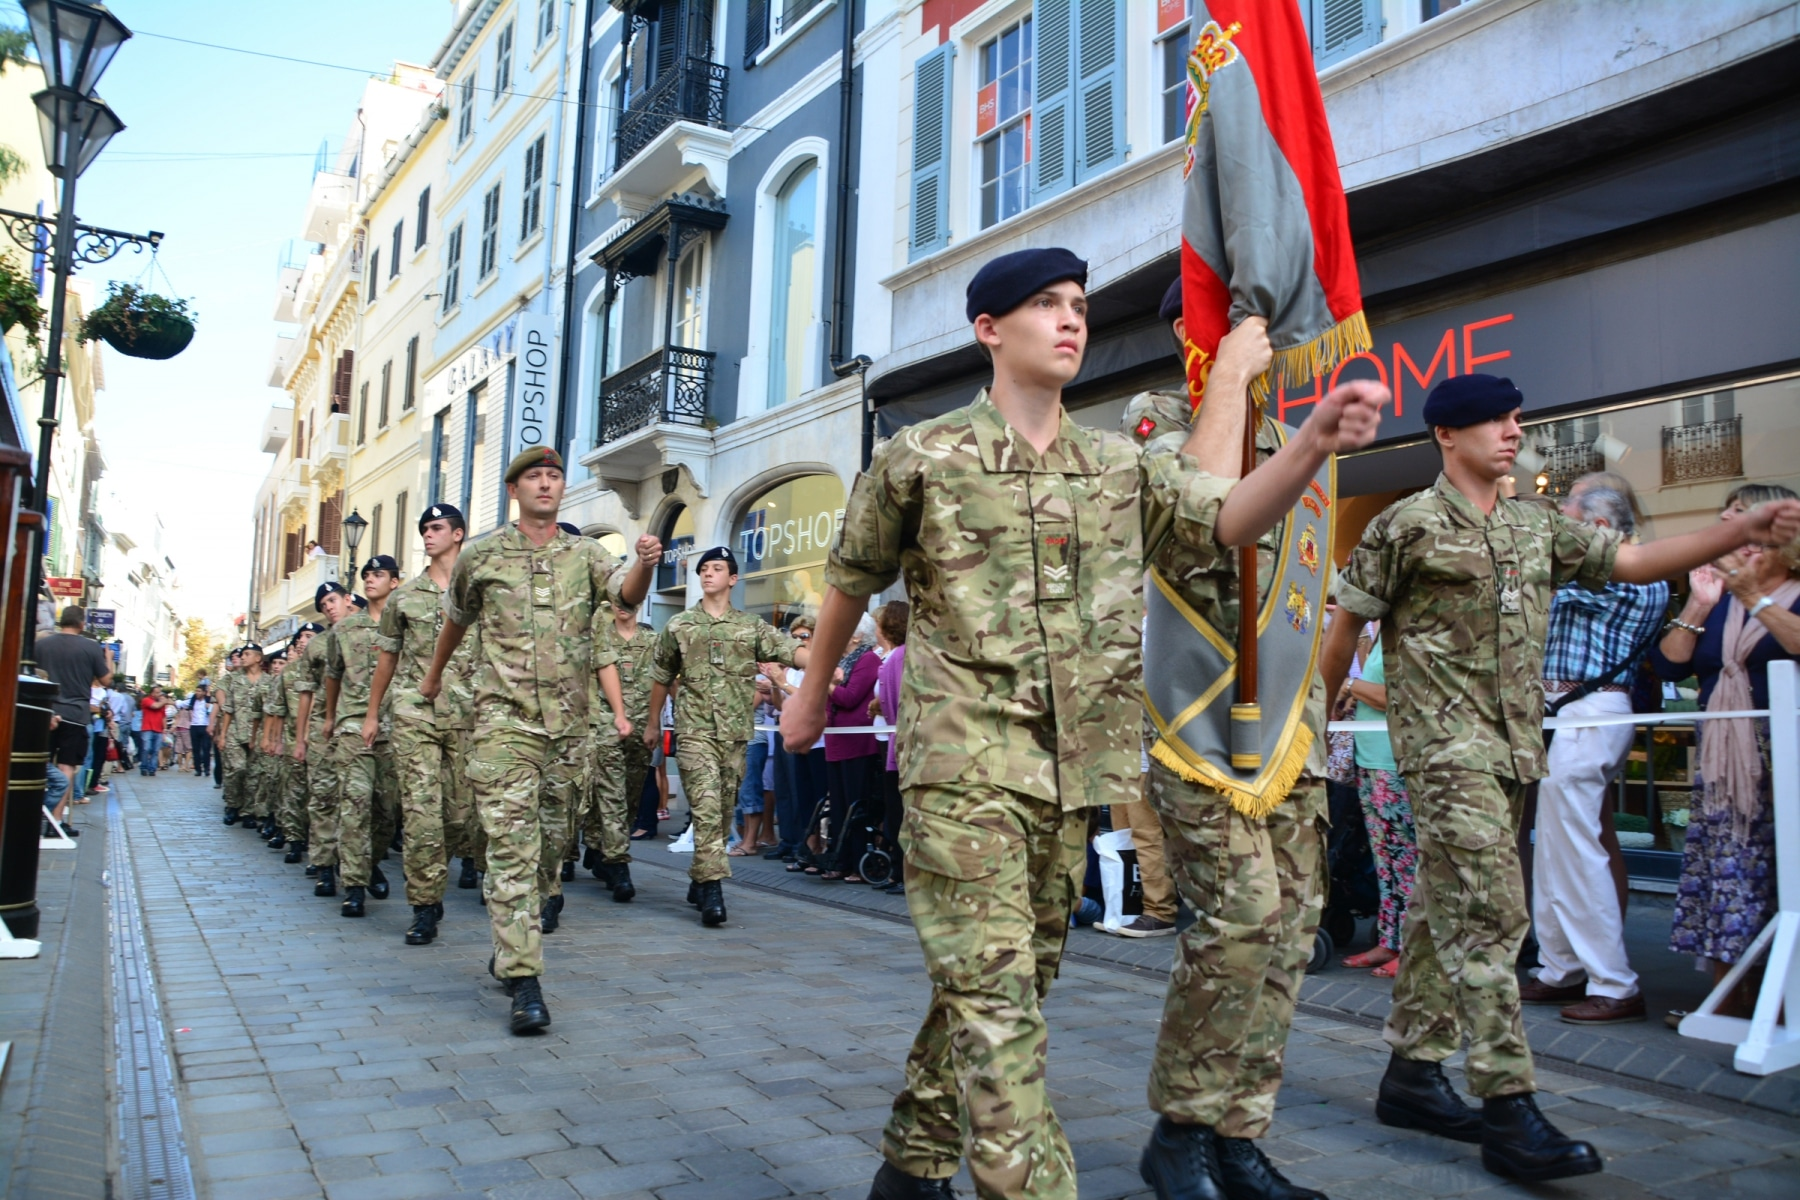 regiment-freedom-of-city-0114_15438414642_o